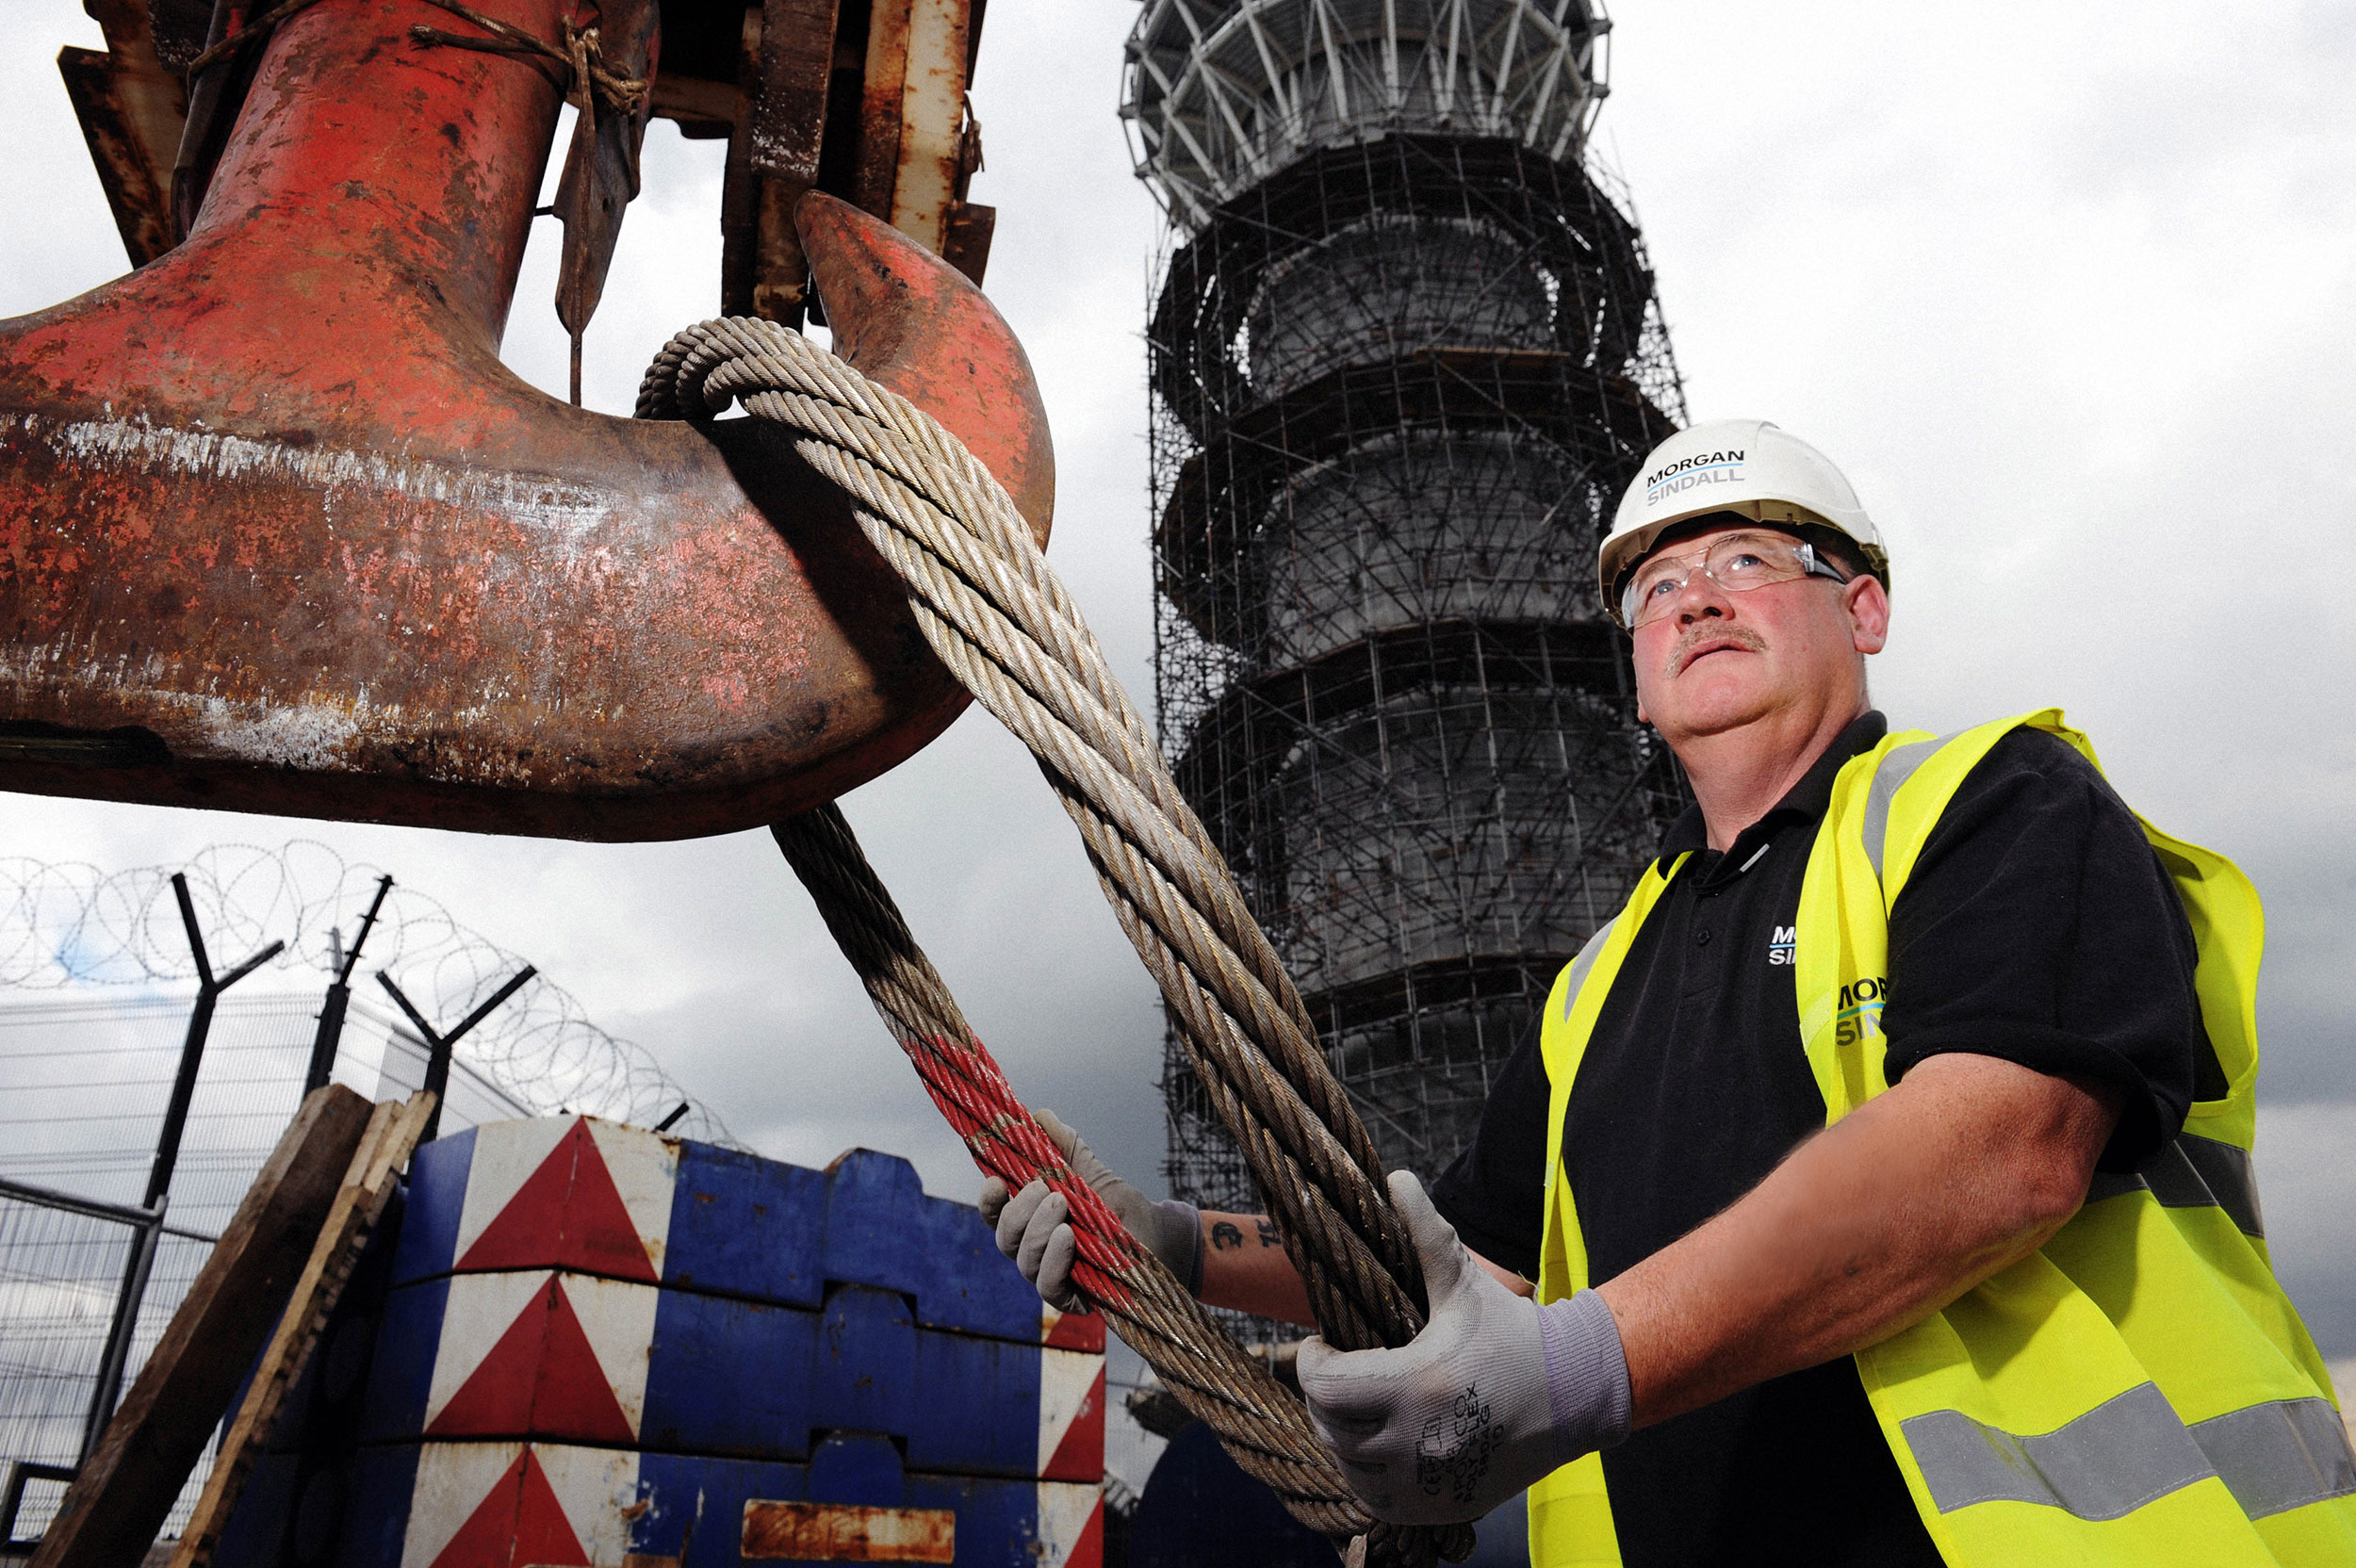 A construction worker helps build Manchester Airport's aircraft control tower.